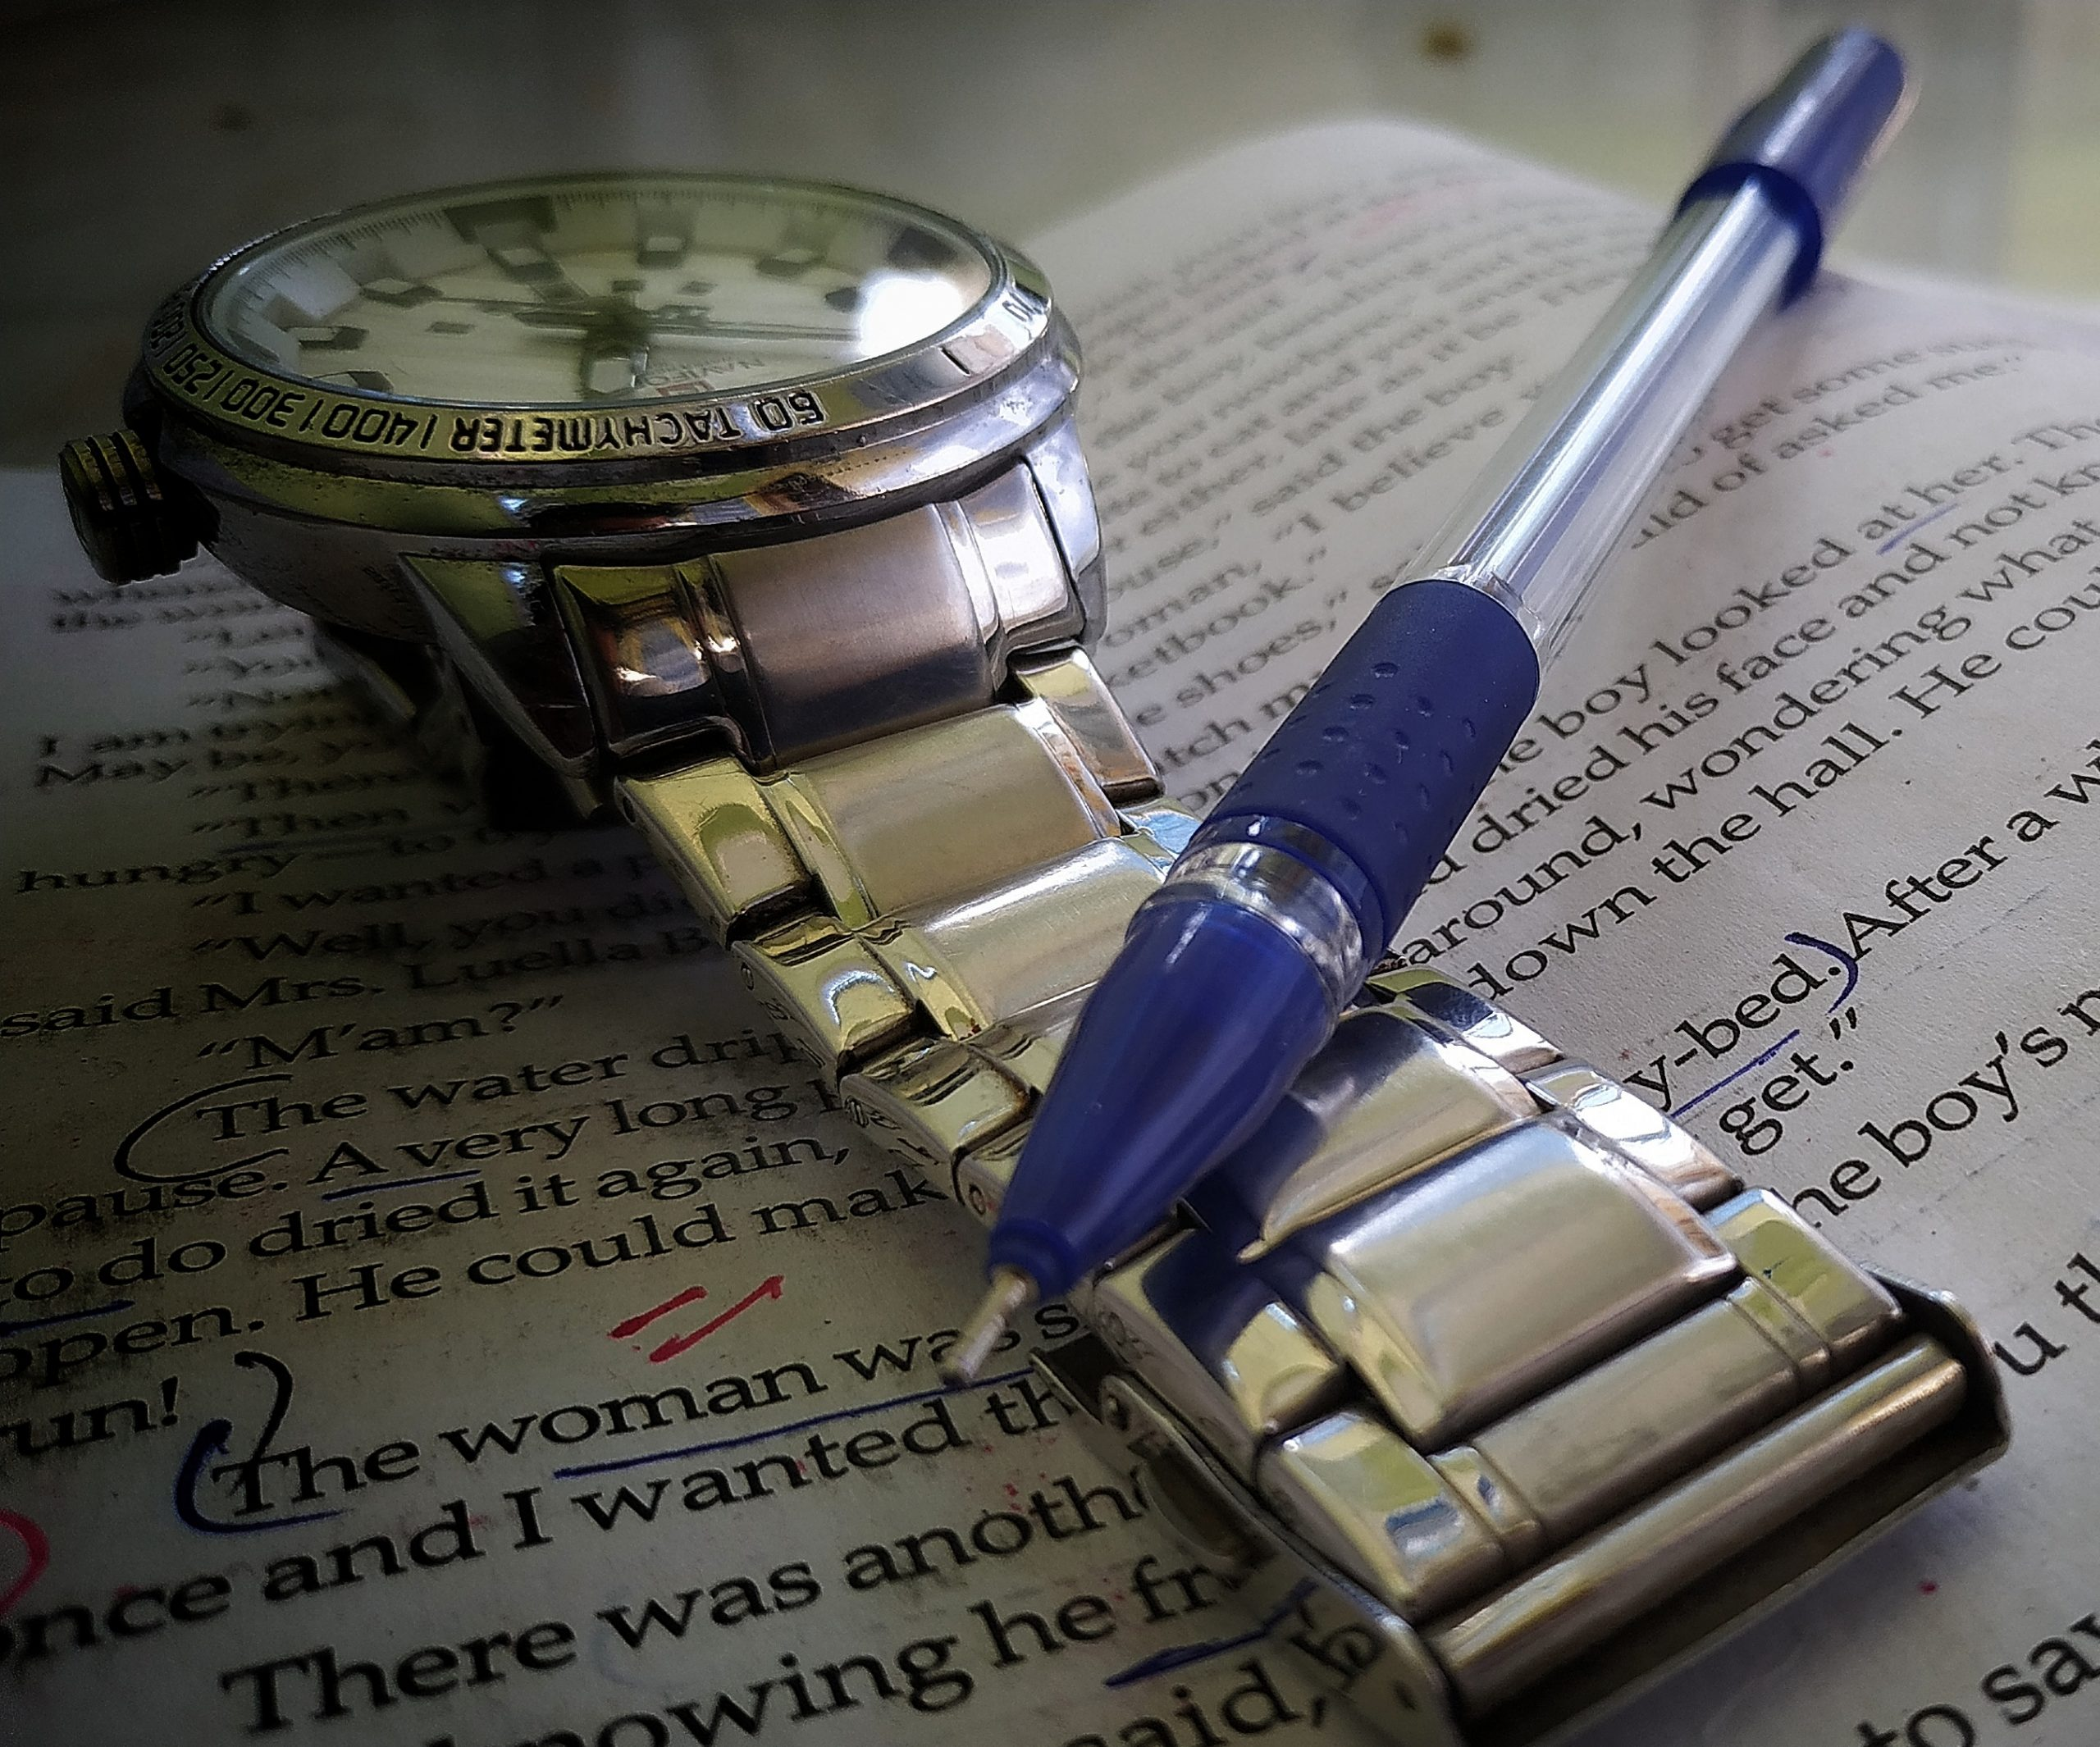 Pen paper and wrist watch